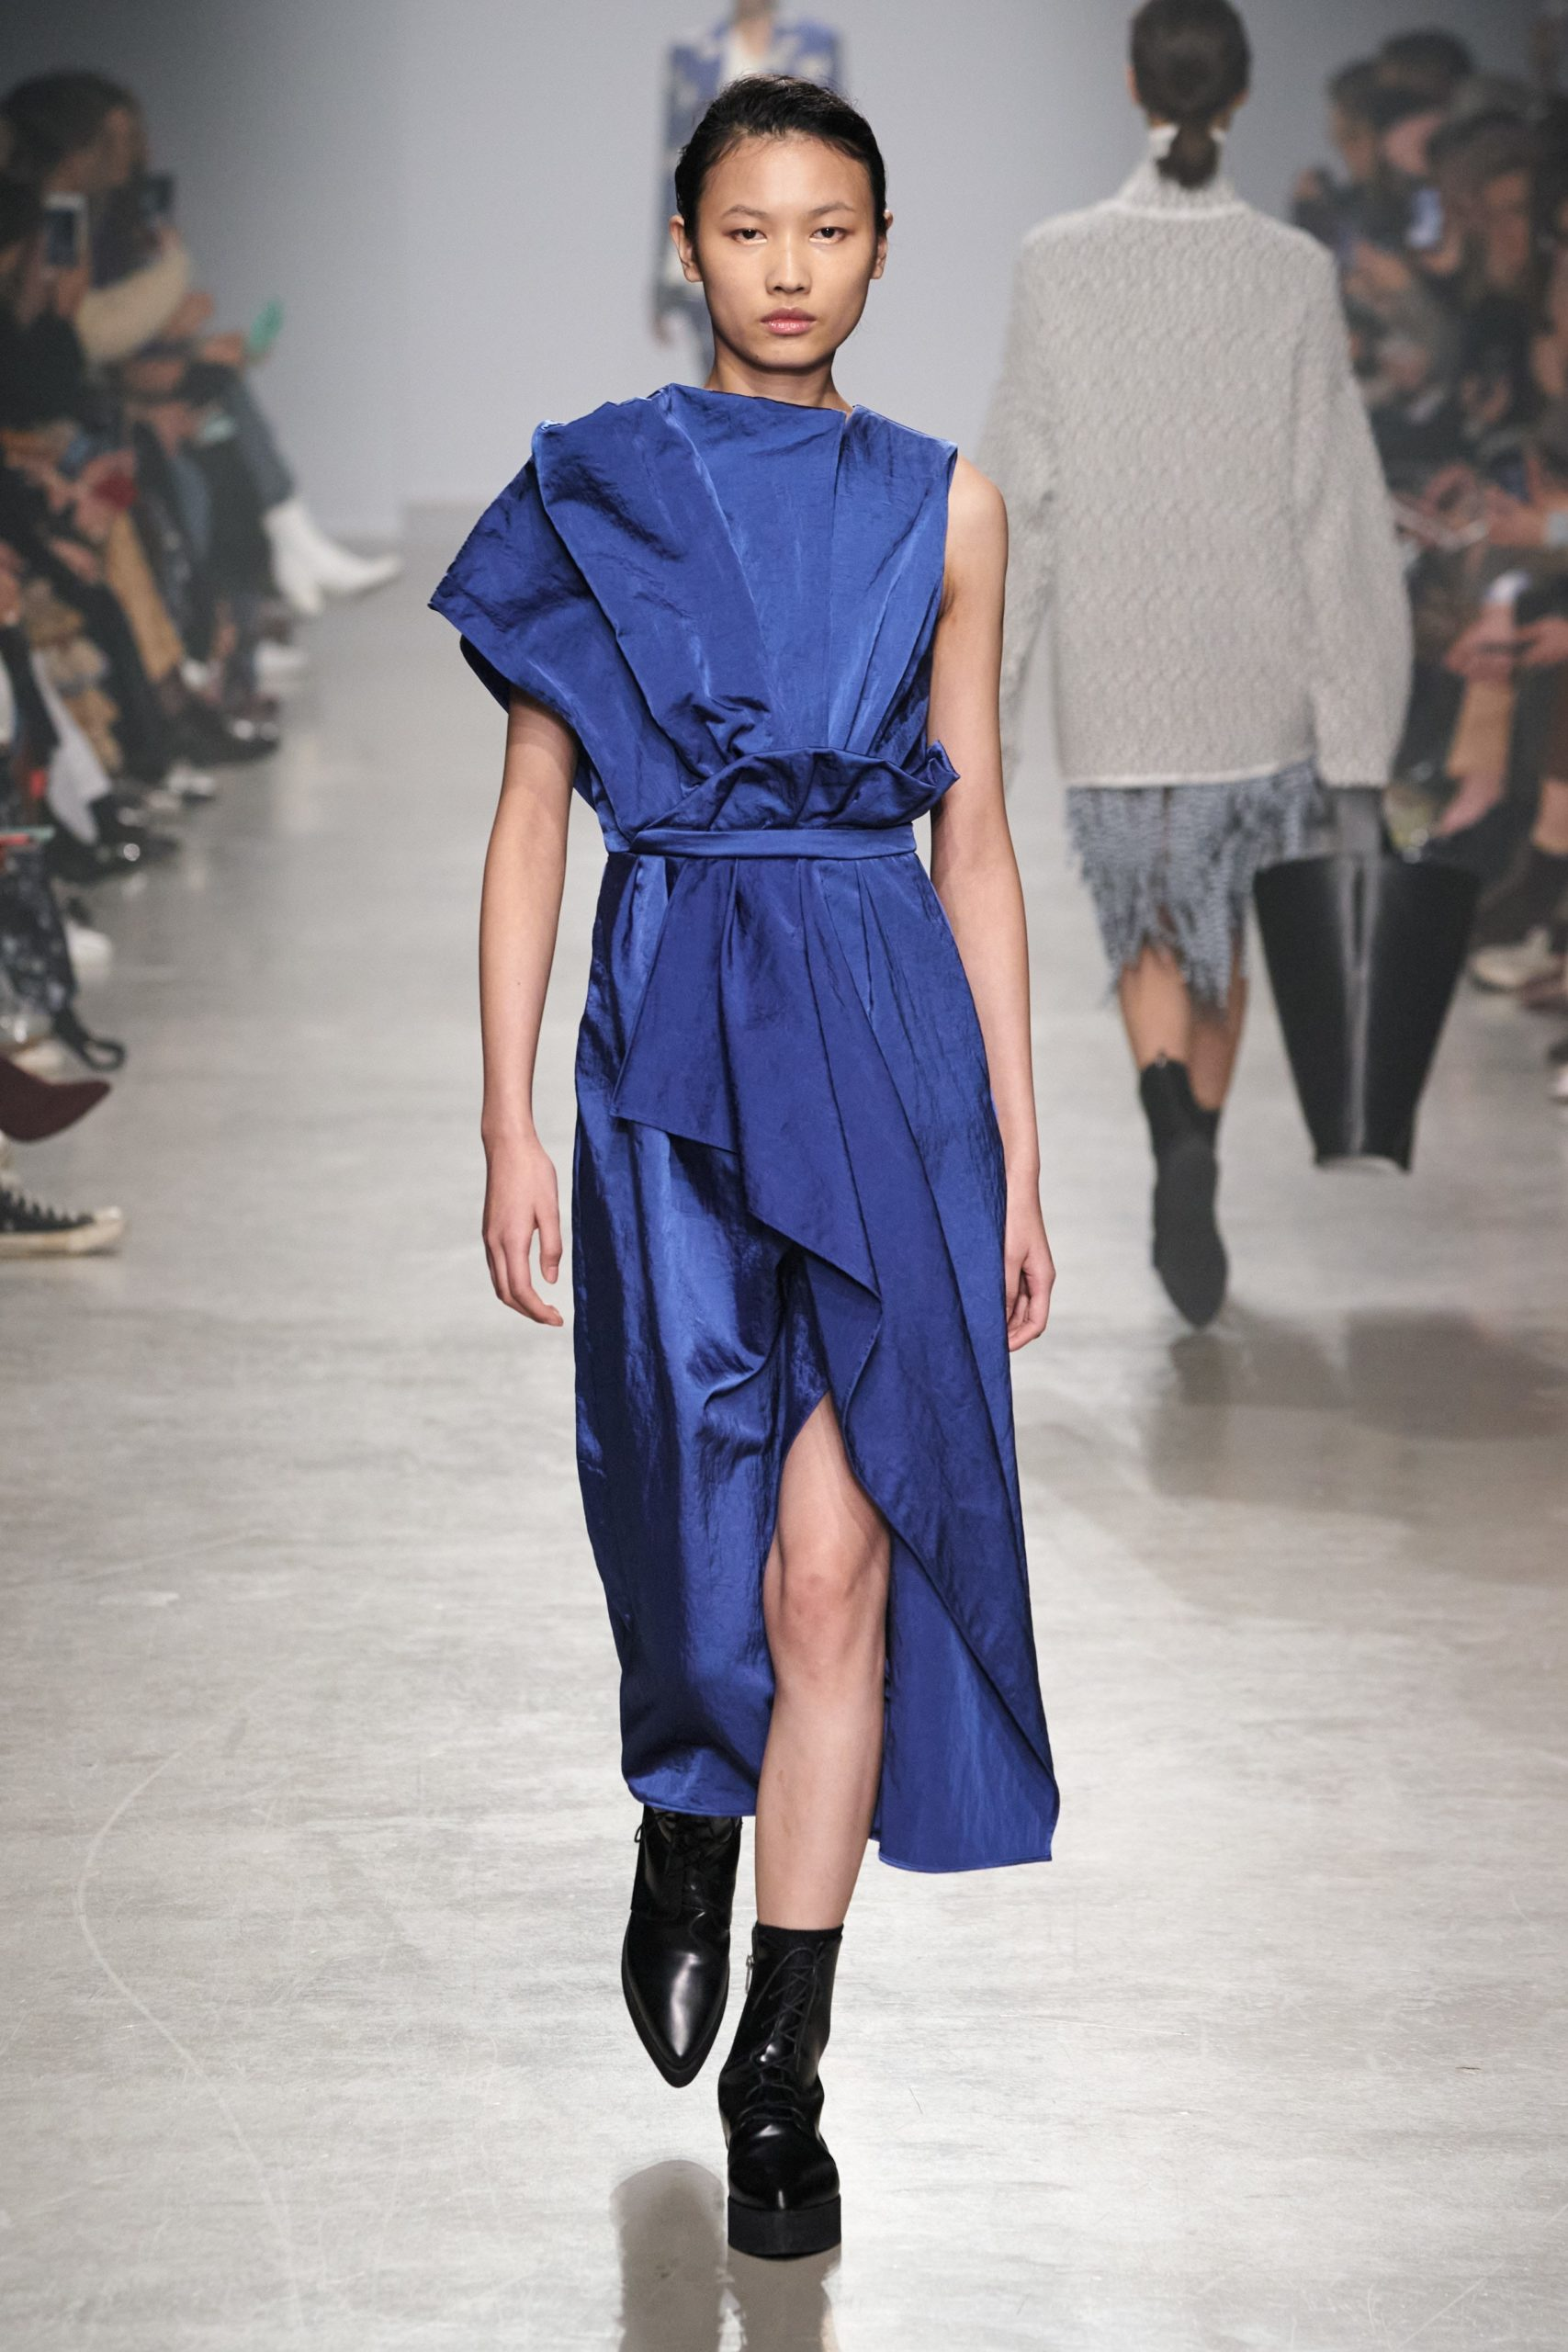 Christian Wijnants Fall Winter 2020 trends runway coverage Ready To Wear Vogue blue monochrome